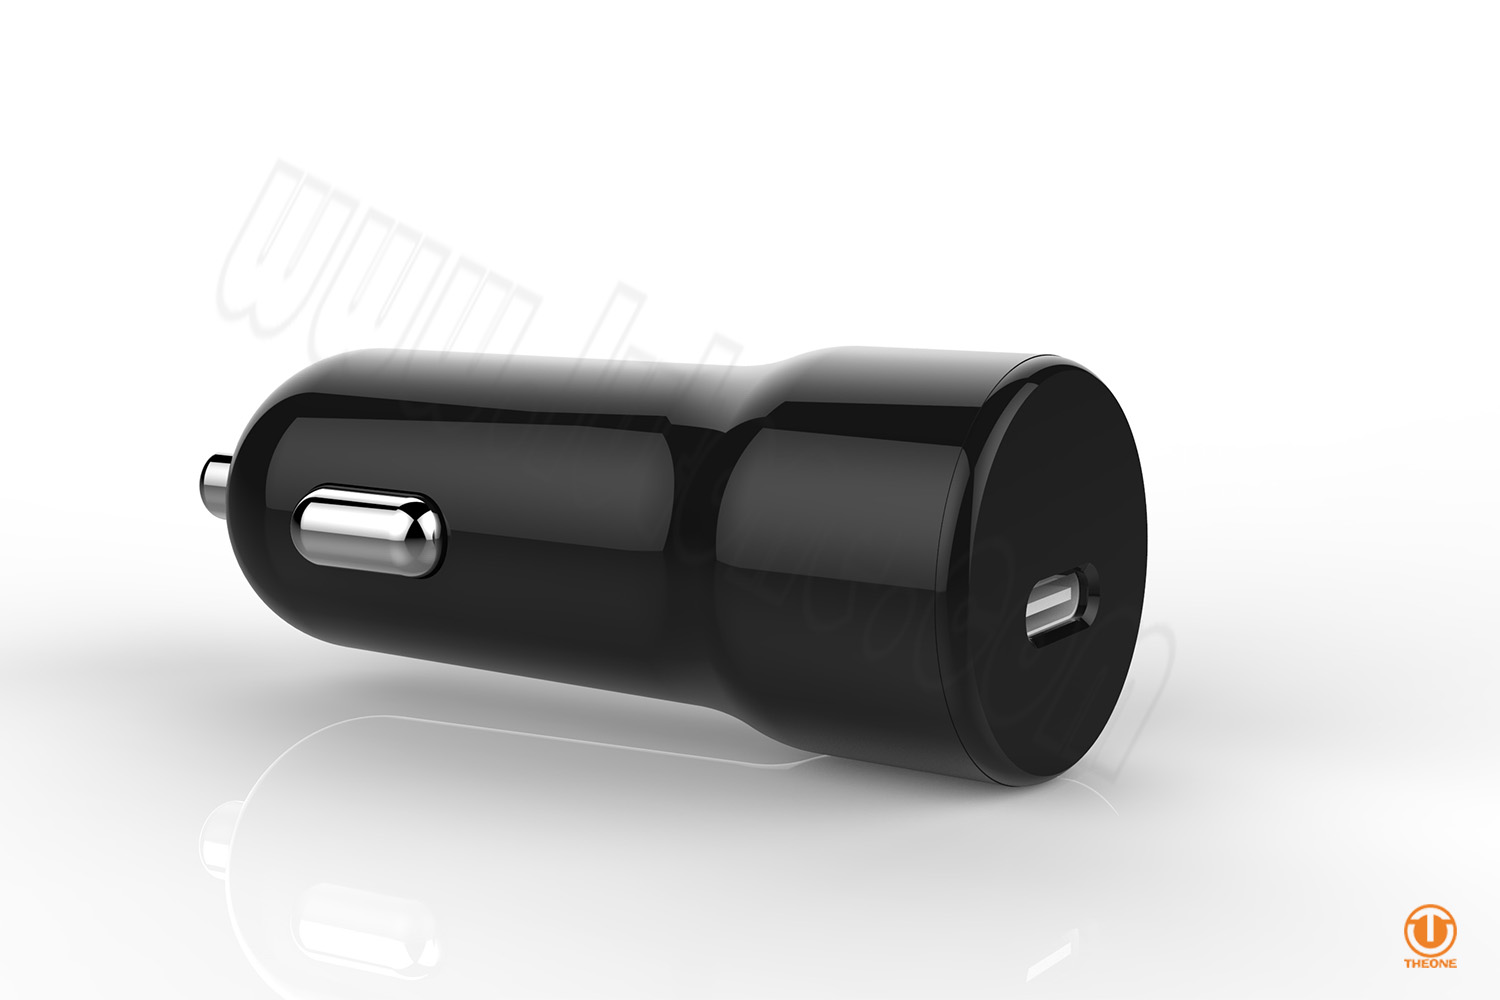 usb-c pd car charger